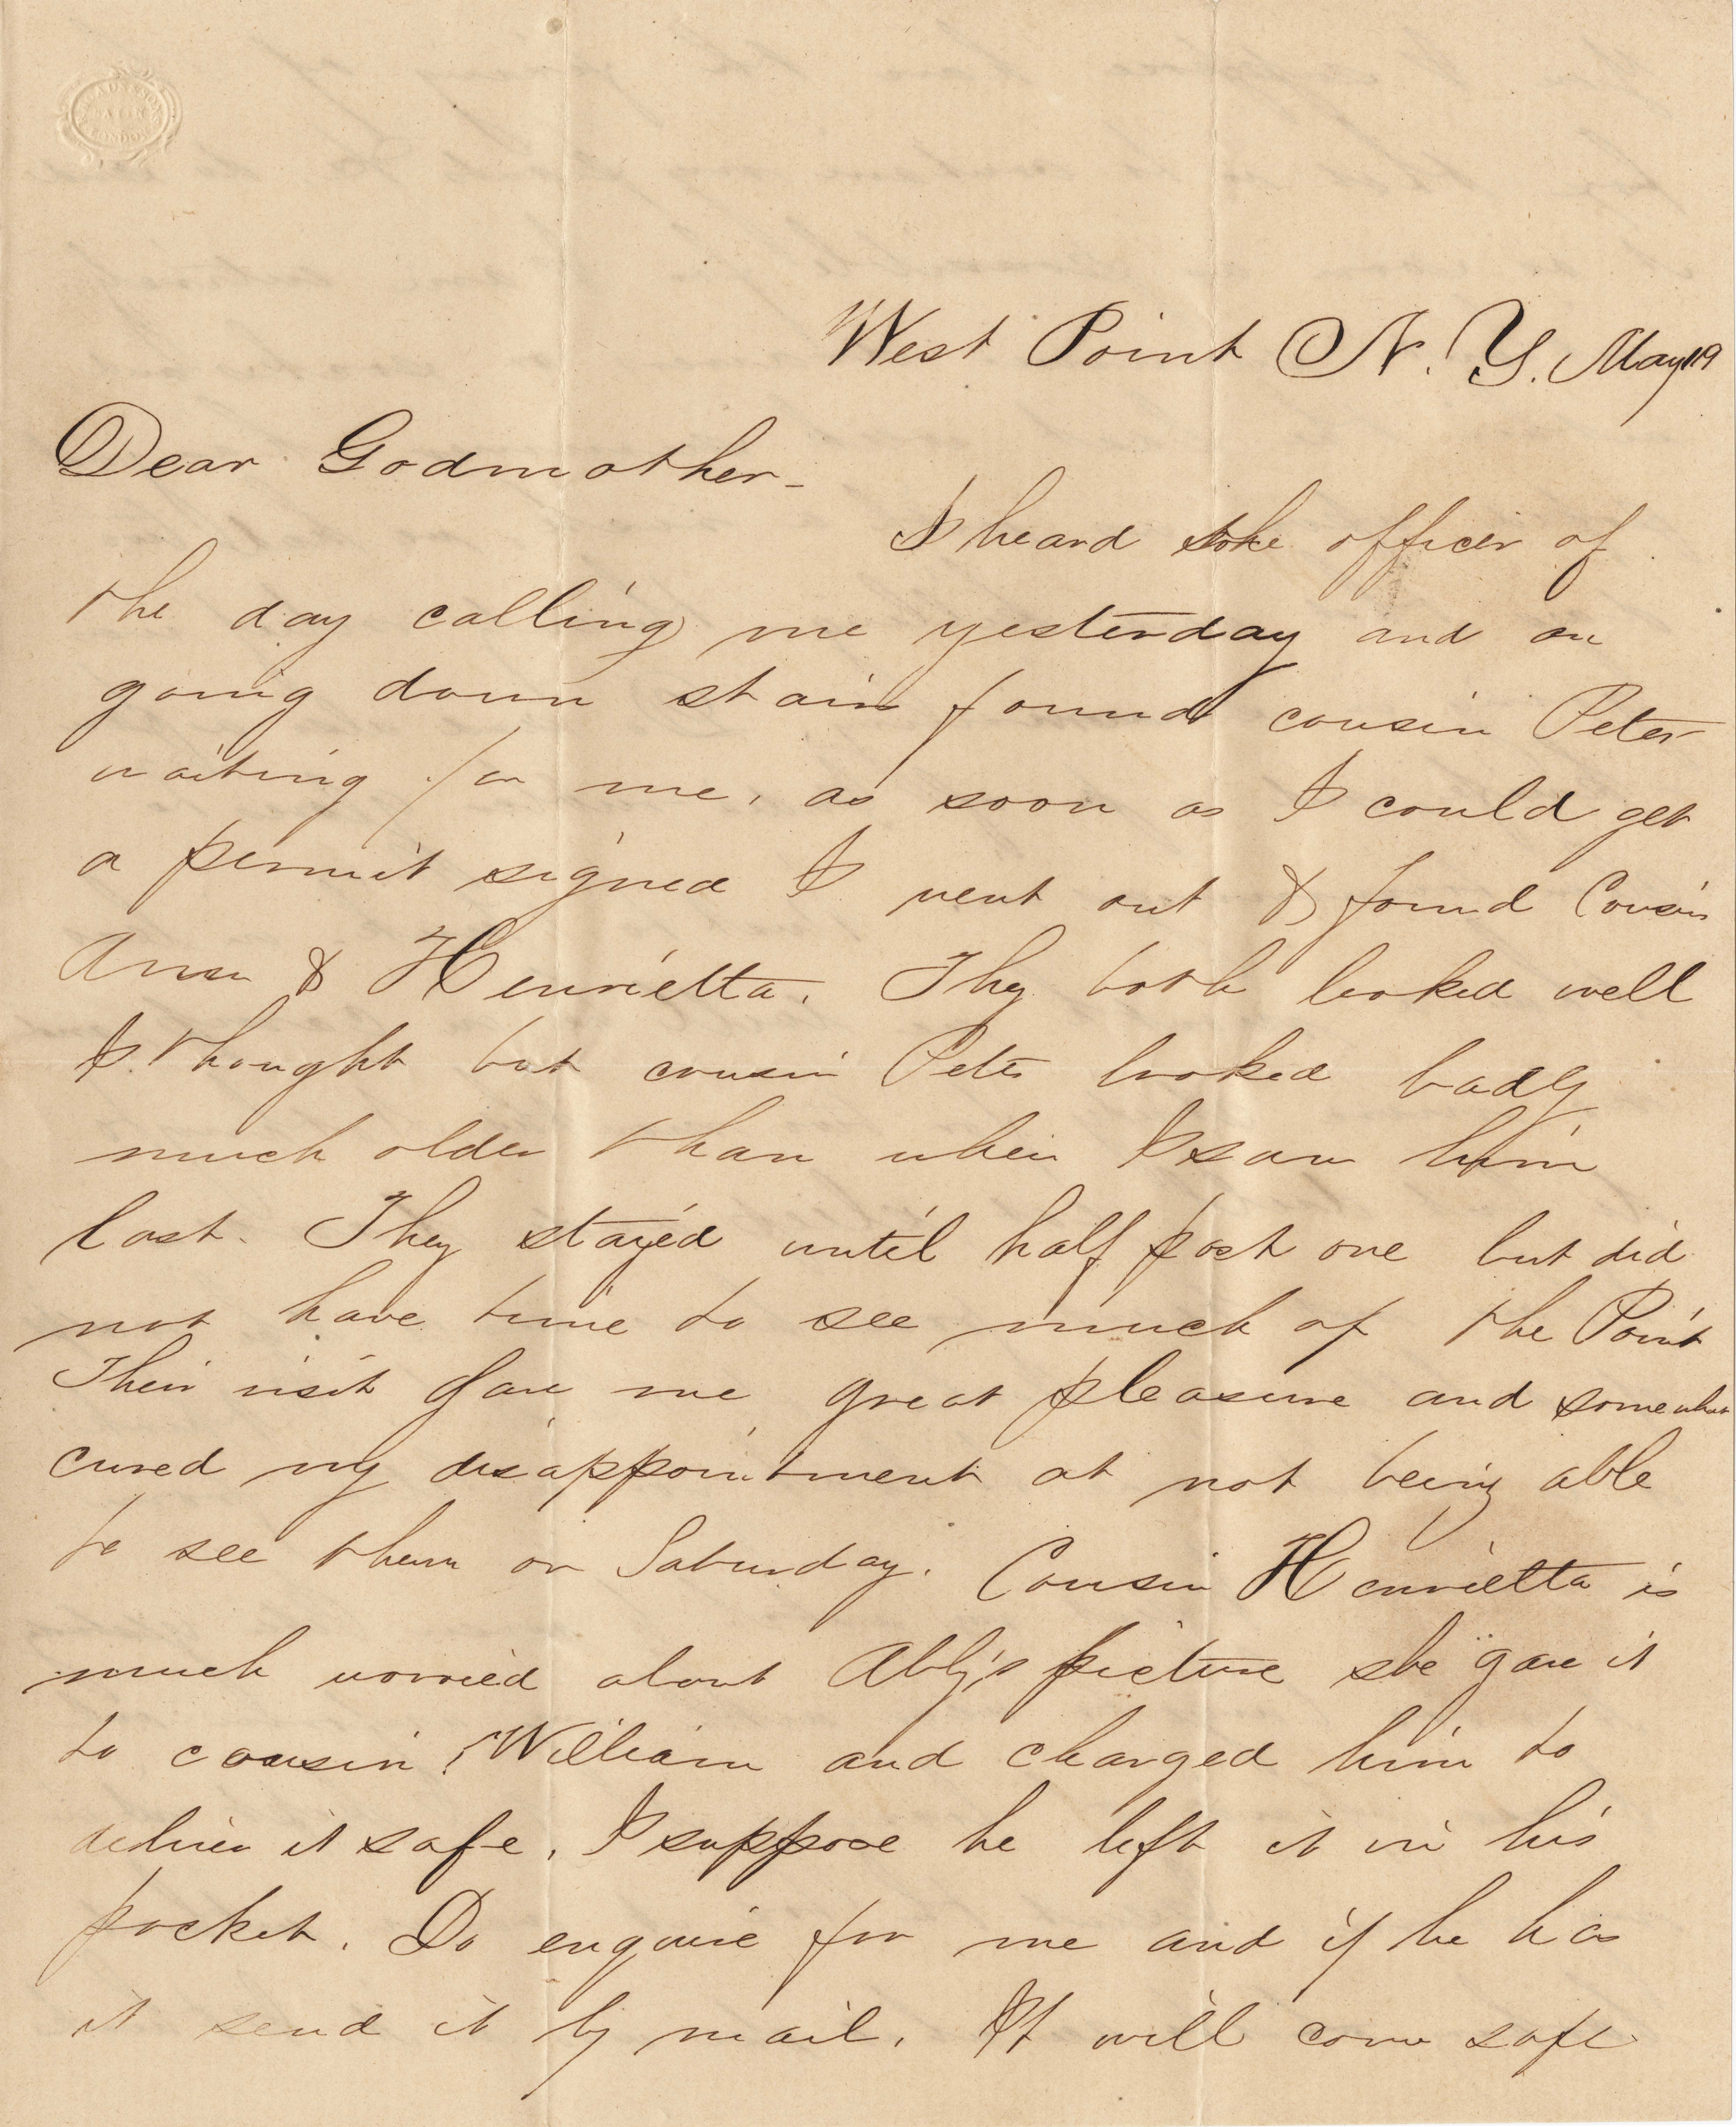 086. Samuel Wragg Ferguson to F.R. Barker (Godmother) -- May 19th (ca. 1855)